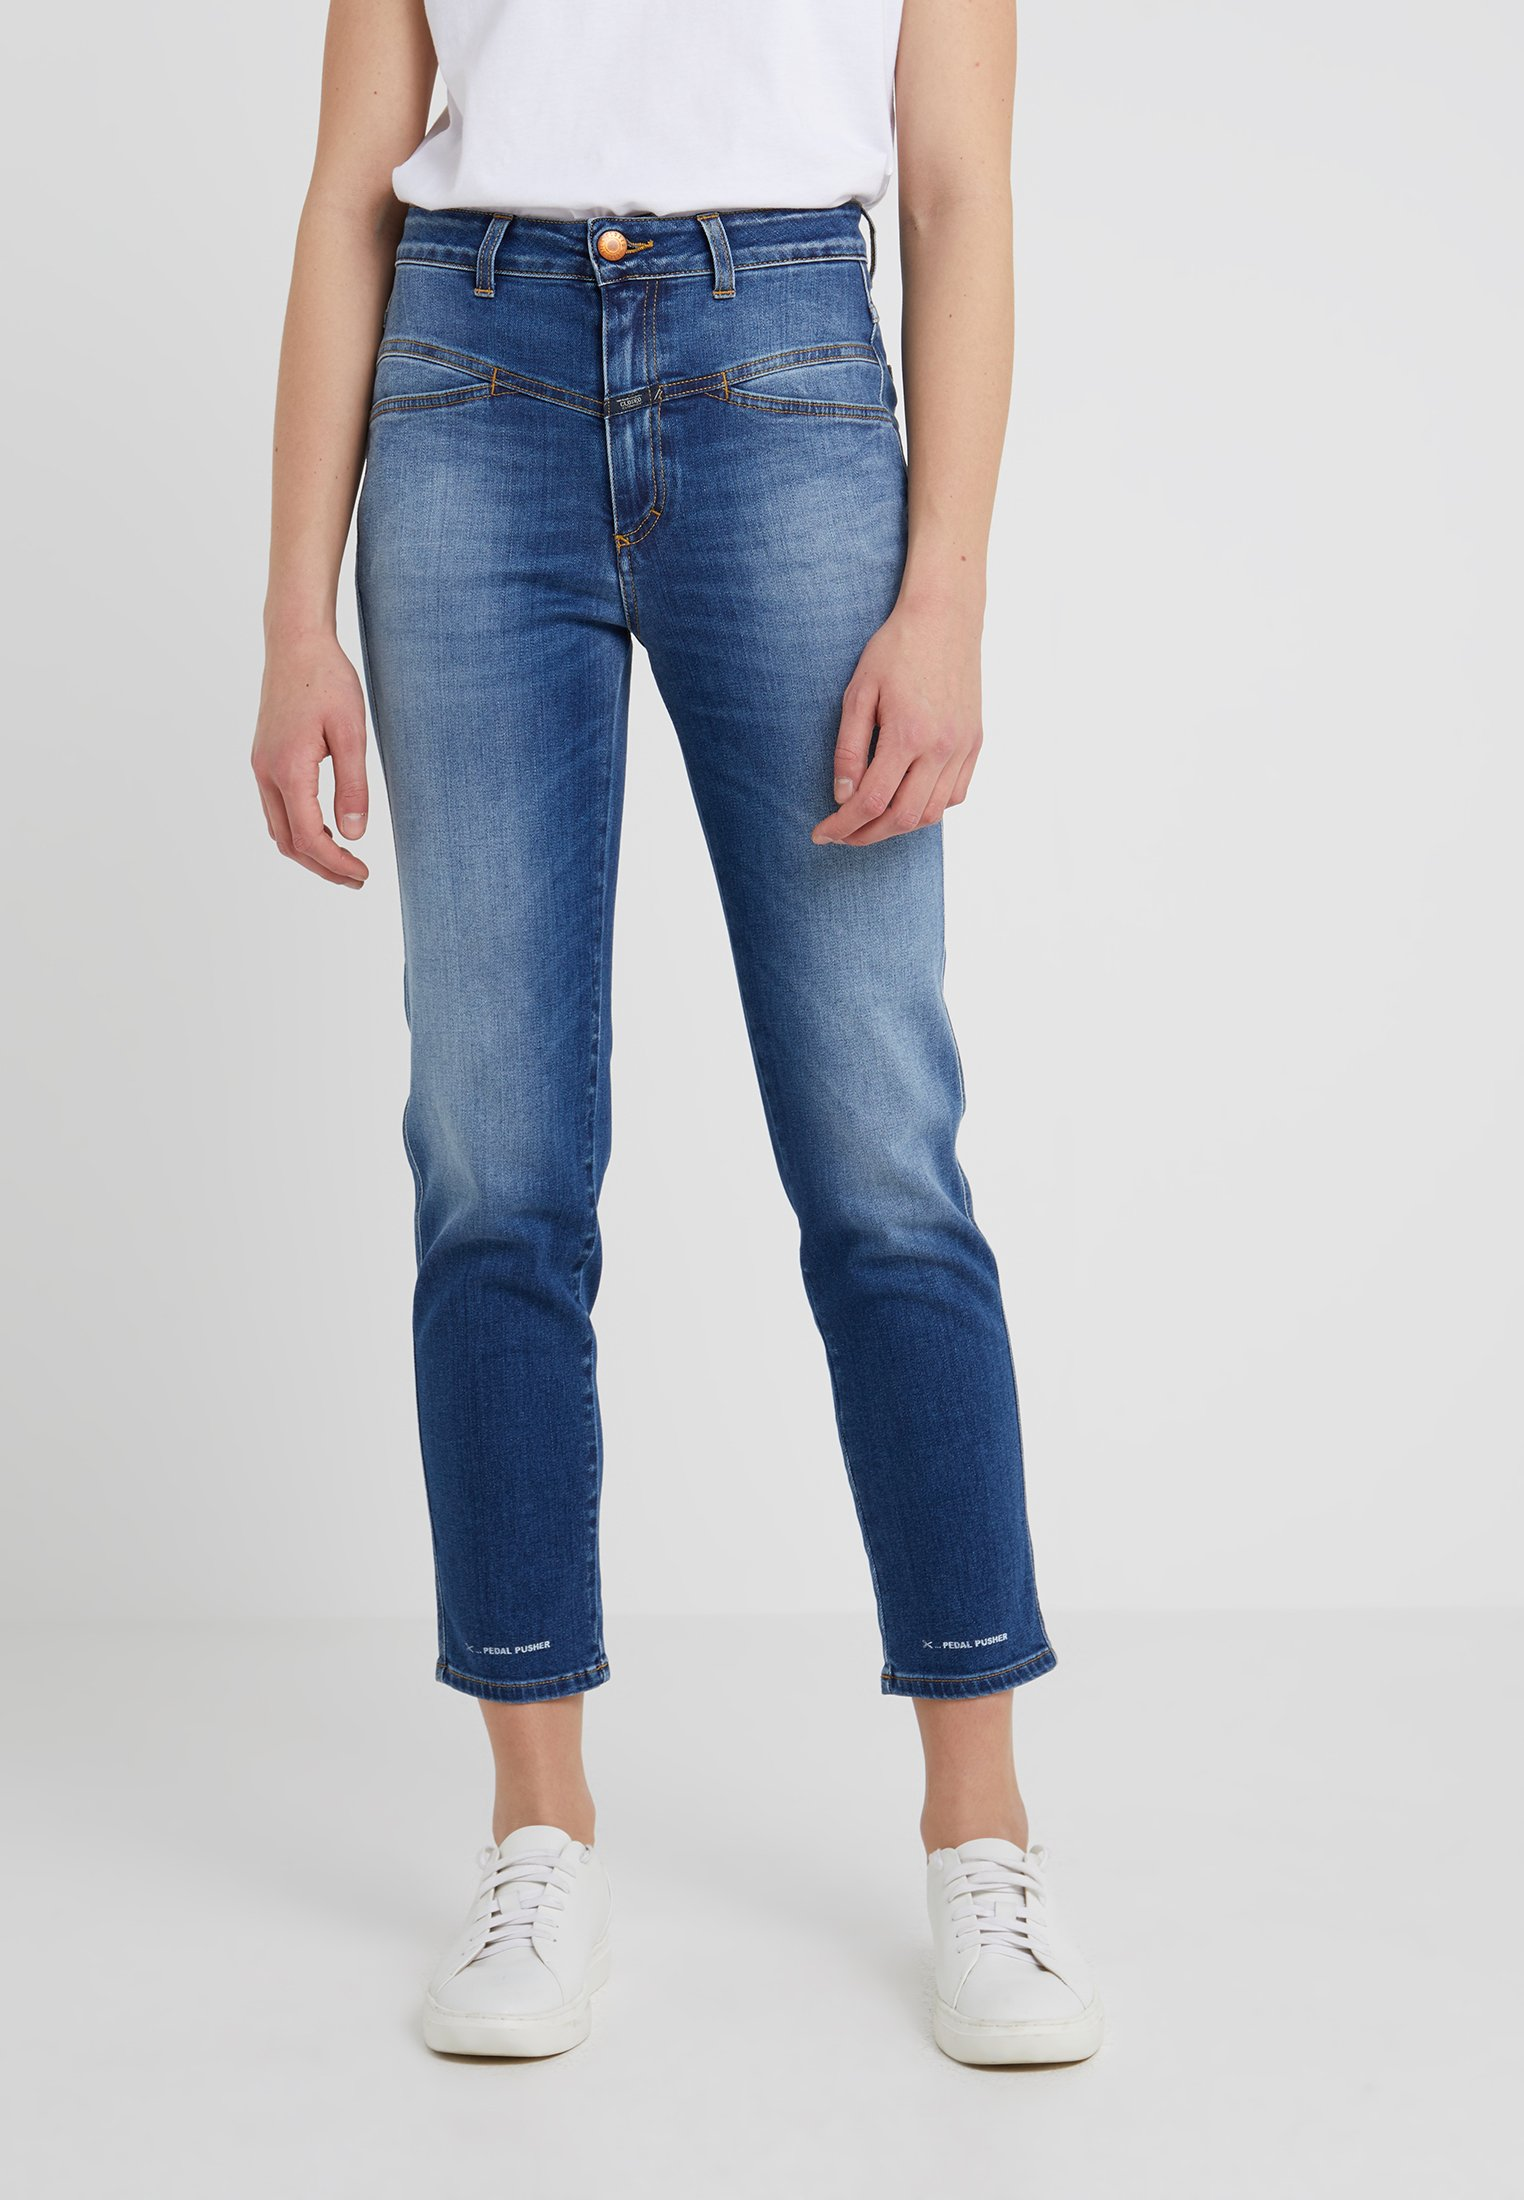 PusherJeans Mid Fuselé Blue Closed Pedal OPmnv0Ny8w